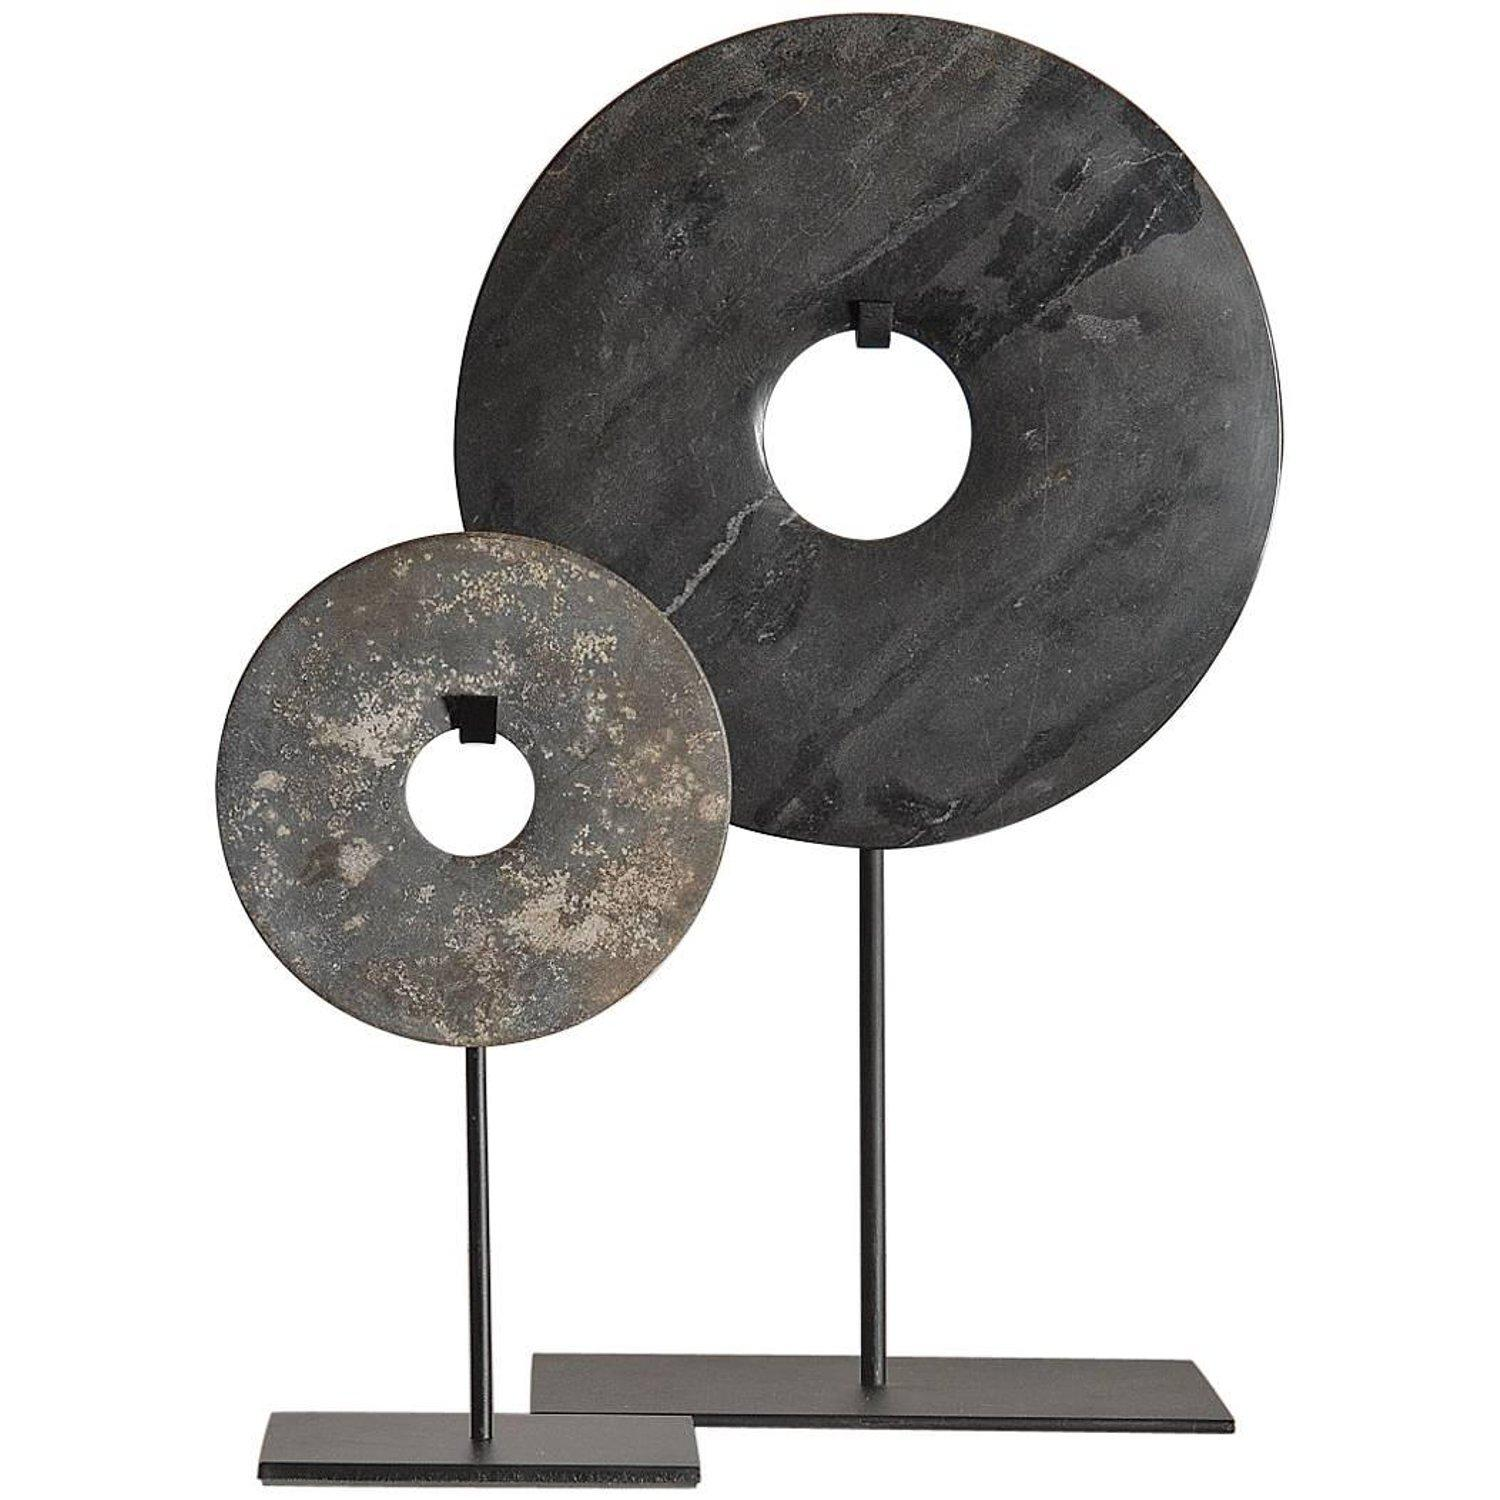 Chinese Marble Bi Discs on Steel stand